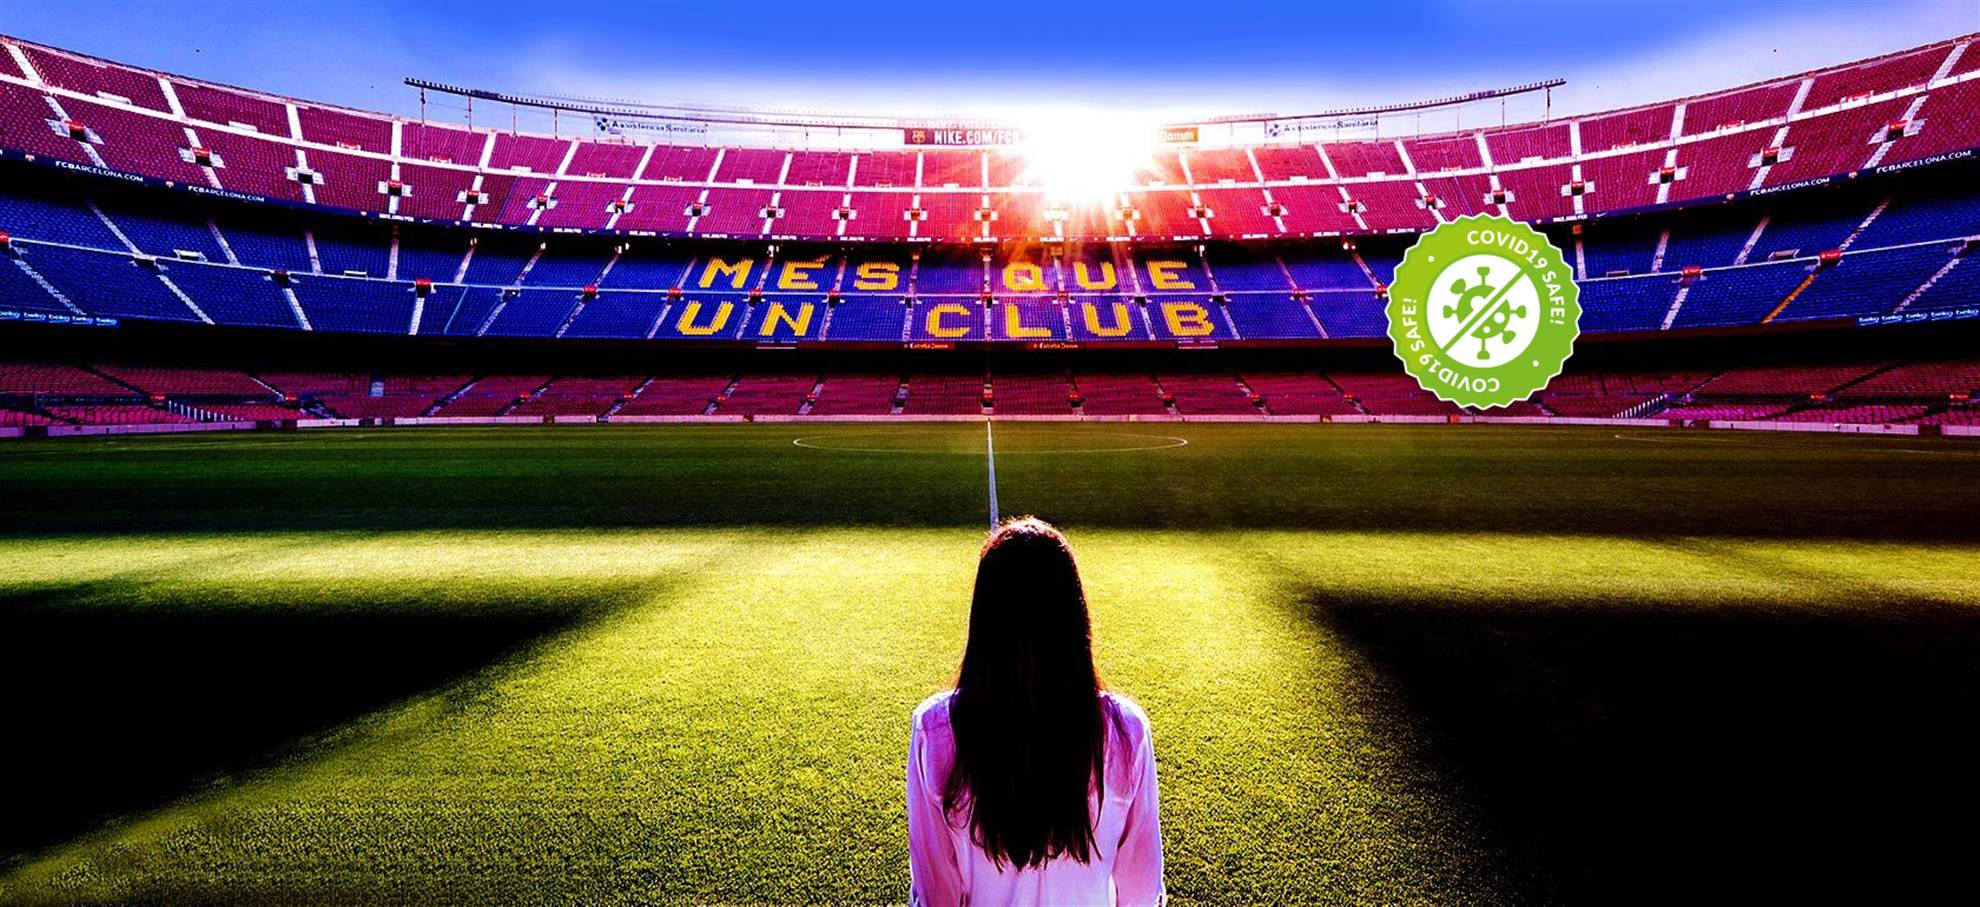 fc barcelona stadium tour skip the line tickets fc barcelona stadium tour skip the line